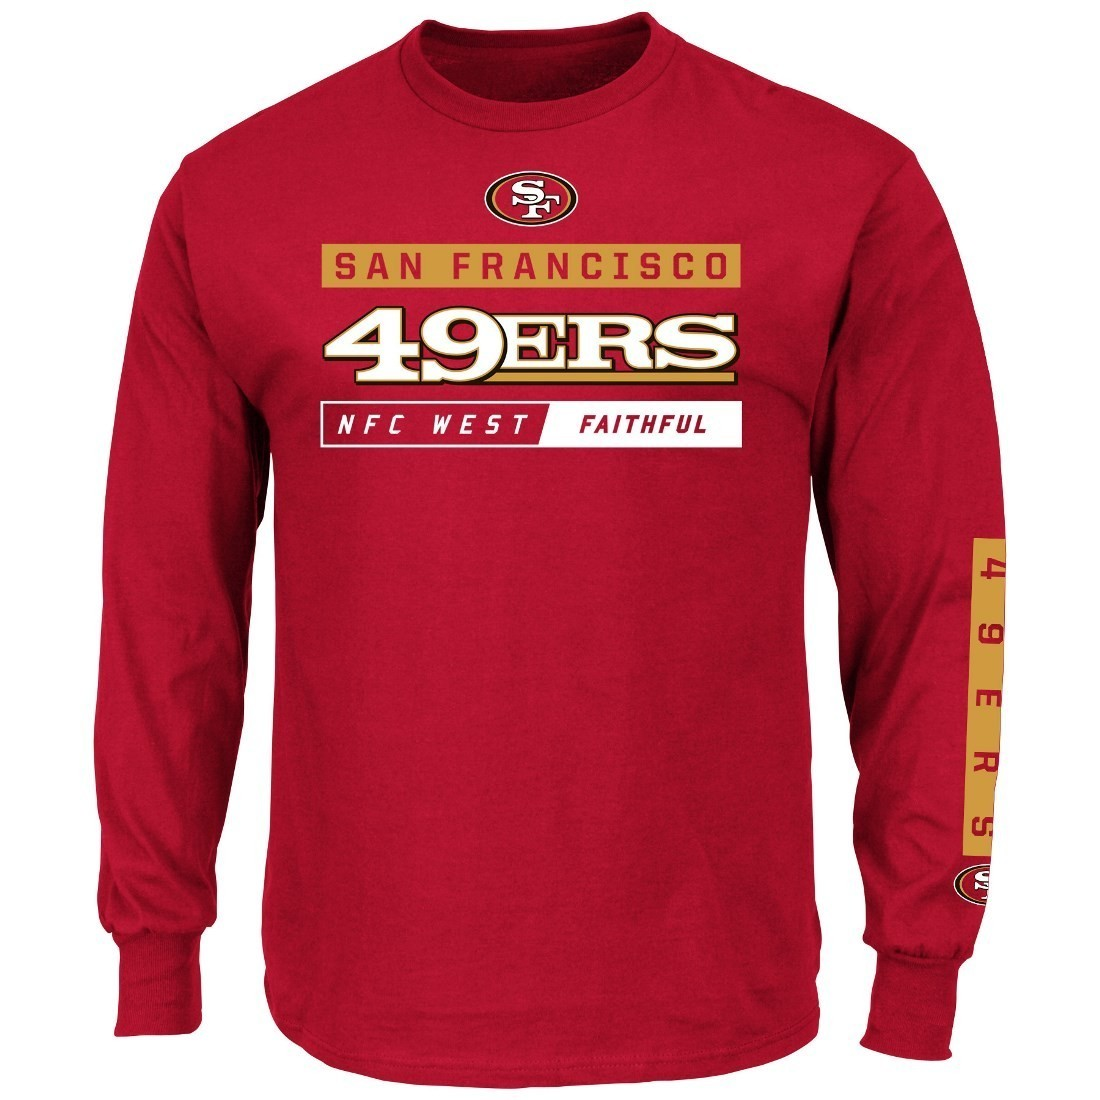 San Francisco 49ers Majestic NFL Primary Receiver 2 Long Sleeve Men's T-Shirt